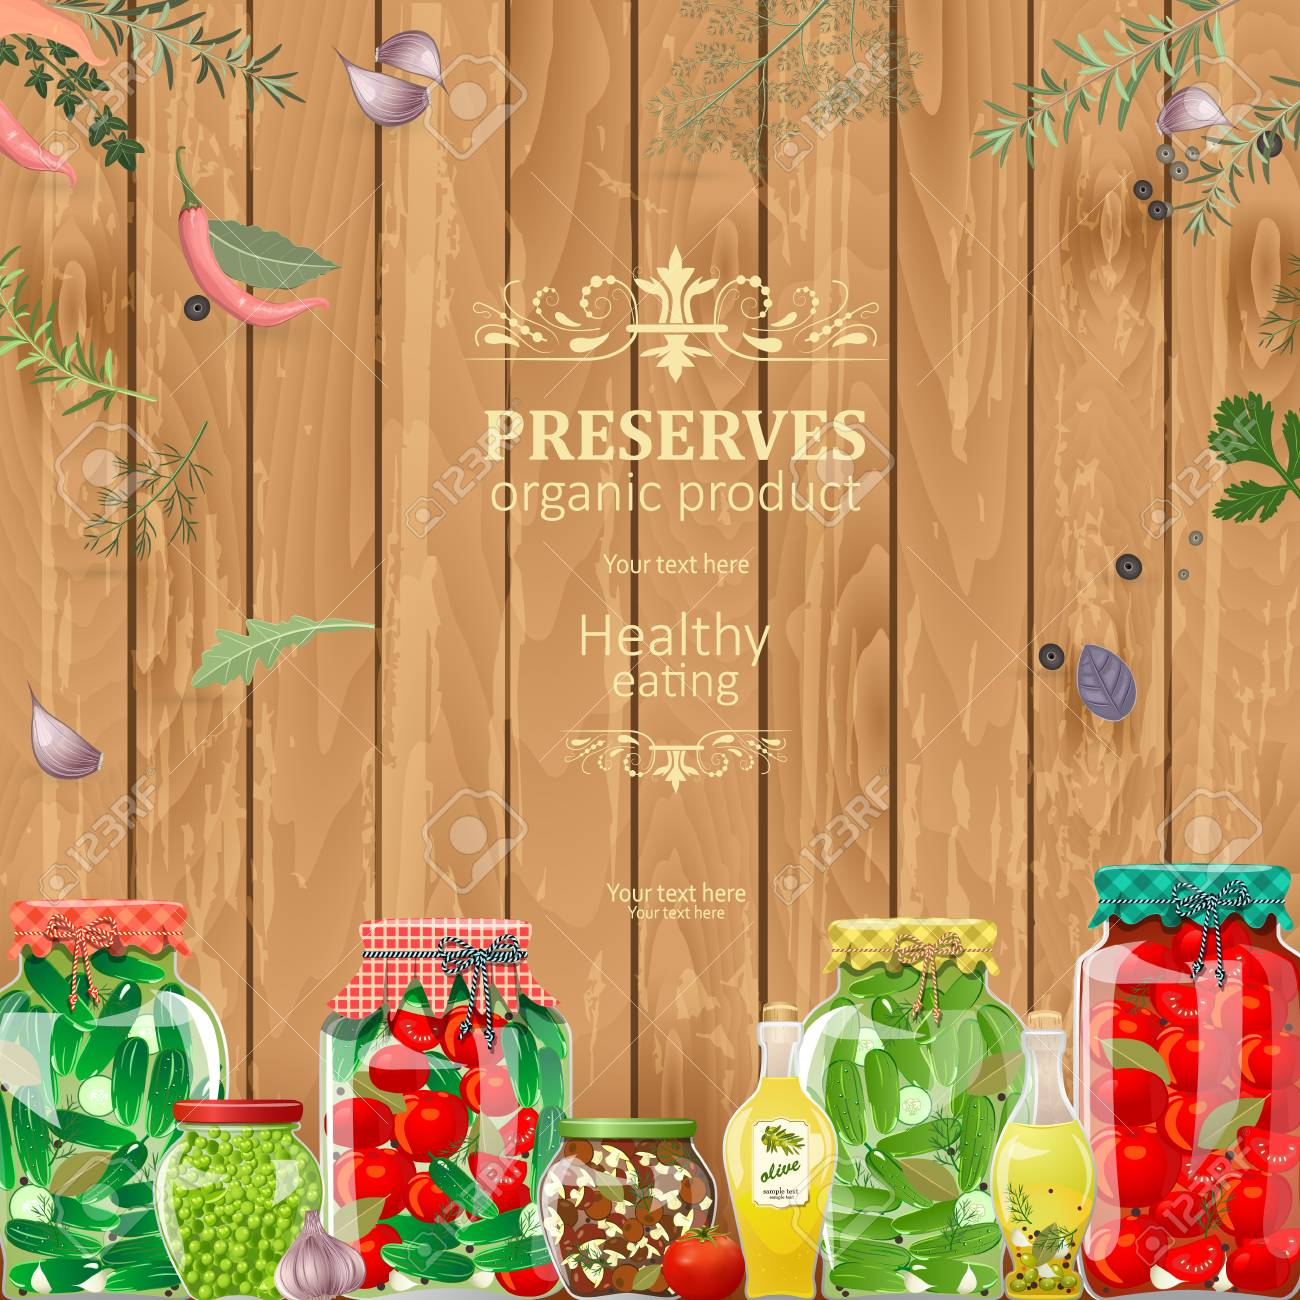 Rustic Banner With Preserving Jars Of Vegetables On Wooden Background Stock Vector